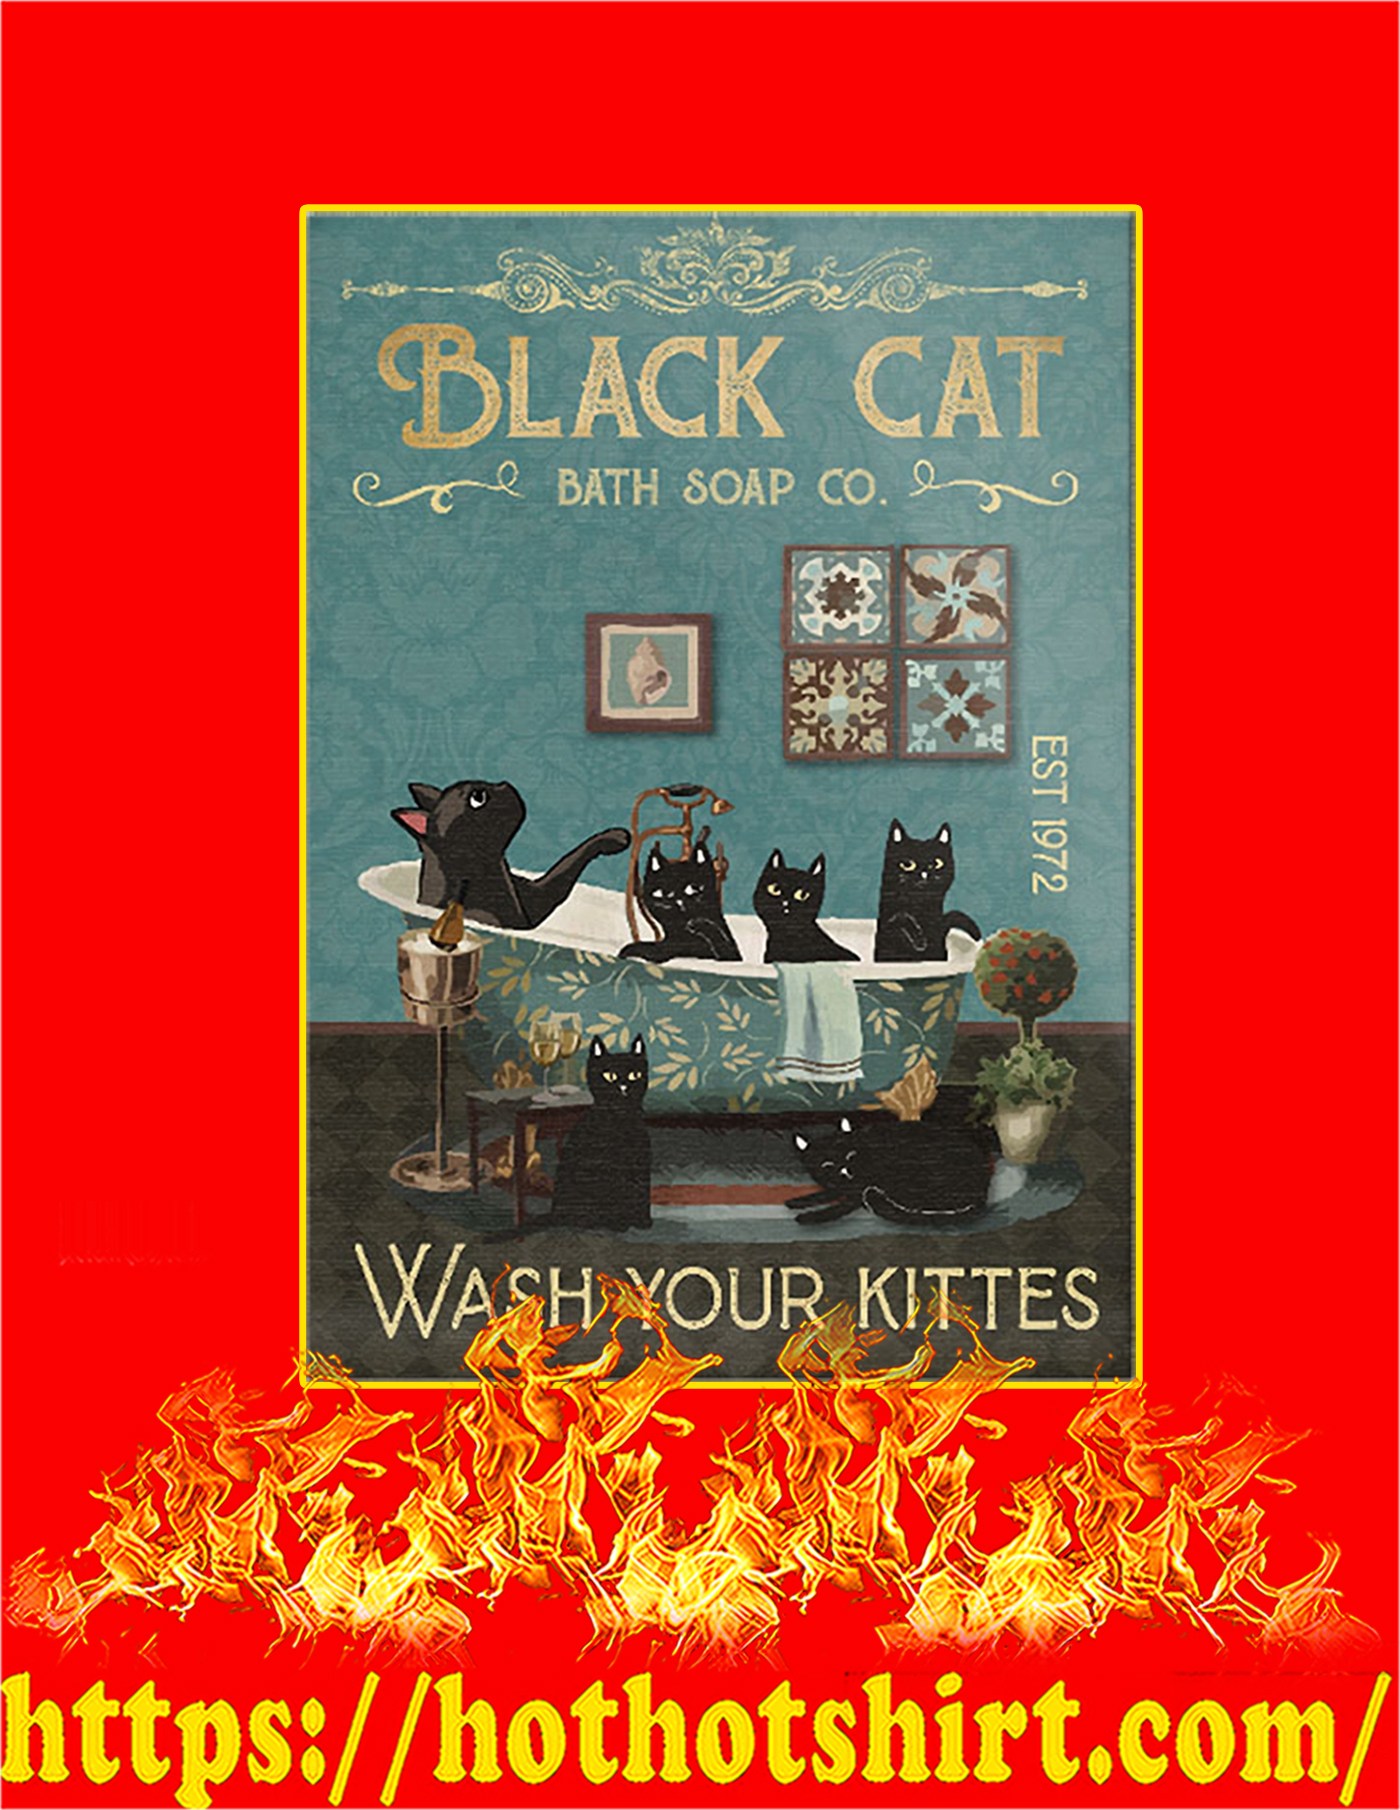 Black cat bath soap co wash your kittes poster - A2